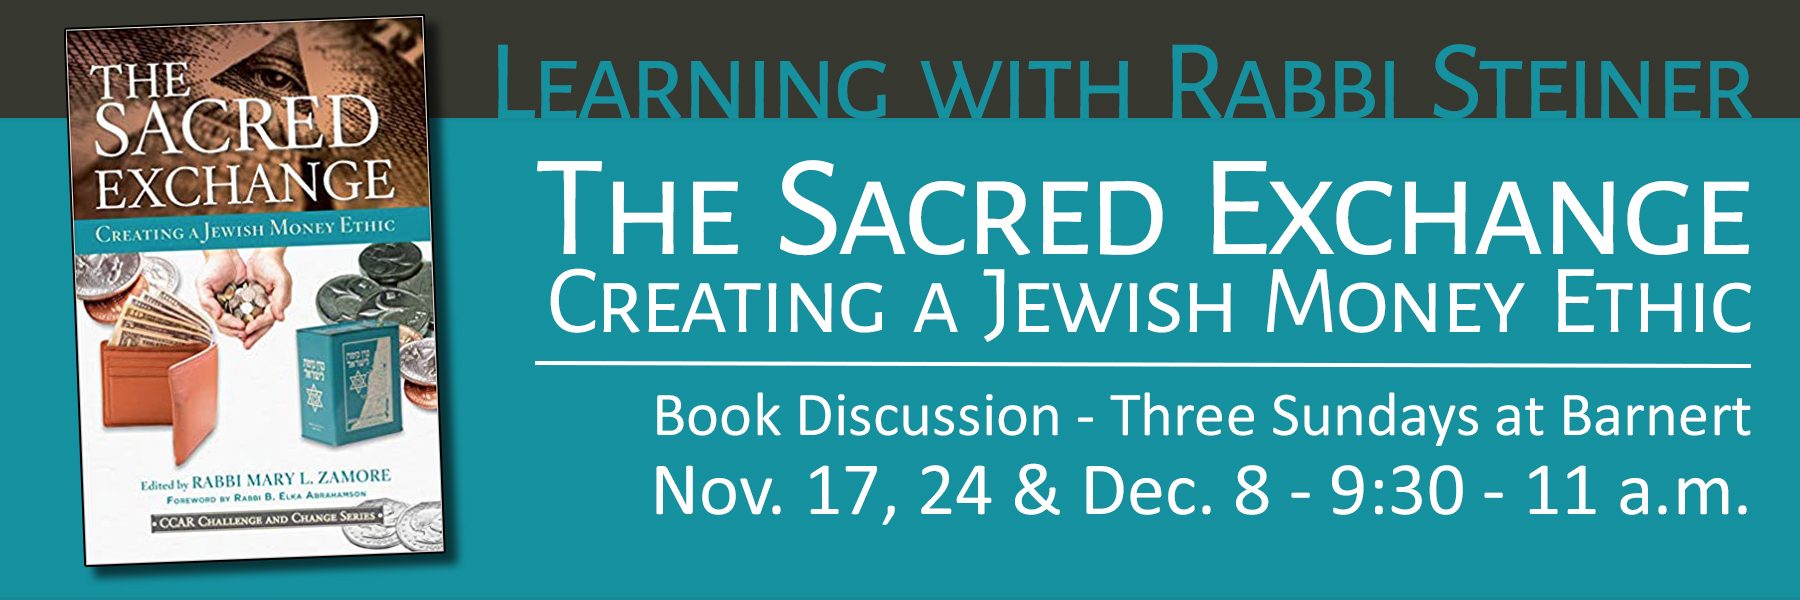 """<a href=""""https://www.barnerttemple.org/event/rabbi-steiners-book-discussion.html""""                                     target=""""_blank"""">                                                                 <span class=""""slider_title"""">                                     Series Begins on Sunday, Nov. 17                                </span>                                                                 </a>                                                                                                                                                                                       <span class=""""slider_description"""">Join Rabbi Steiner for a three-part discussion about the ethics of money and how our religious values impact our use of and relationship with money.  Participants should order the book in prior to the first class.  Click above for details.</span>"""